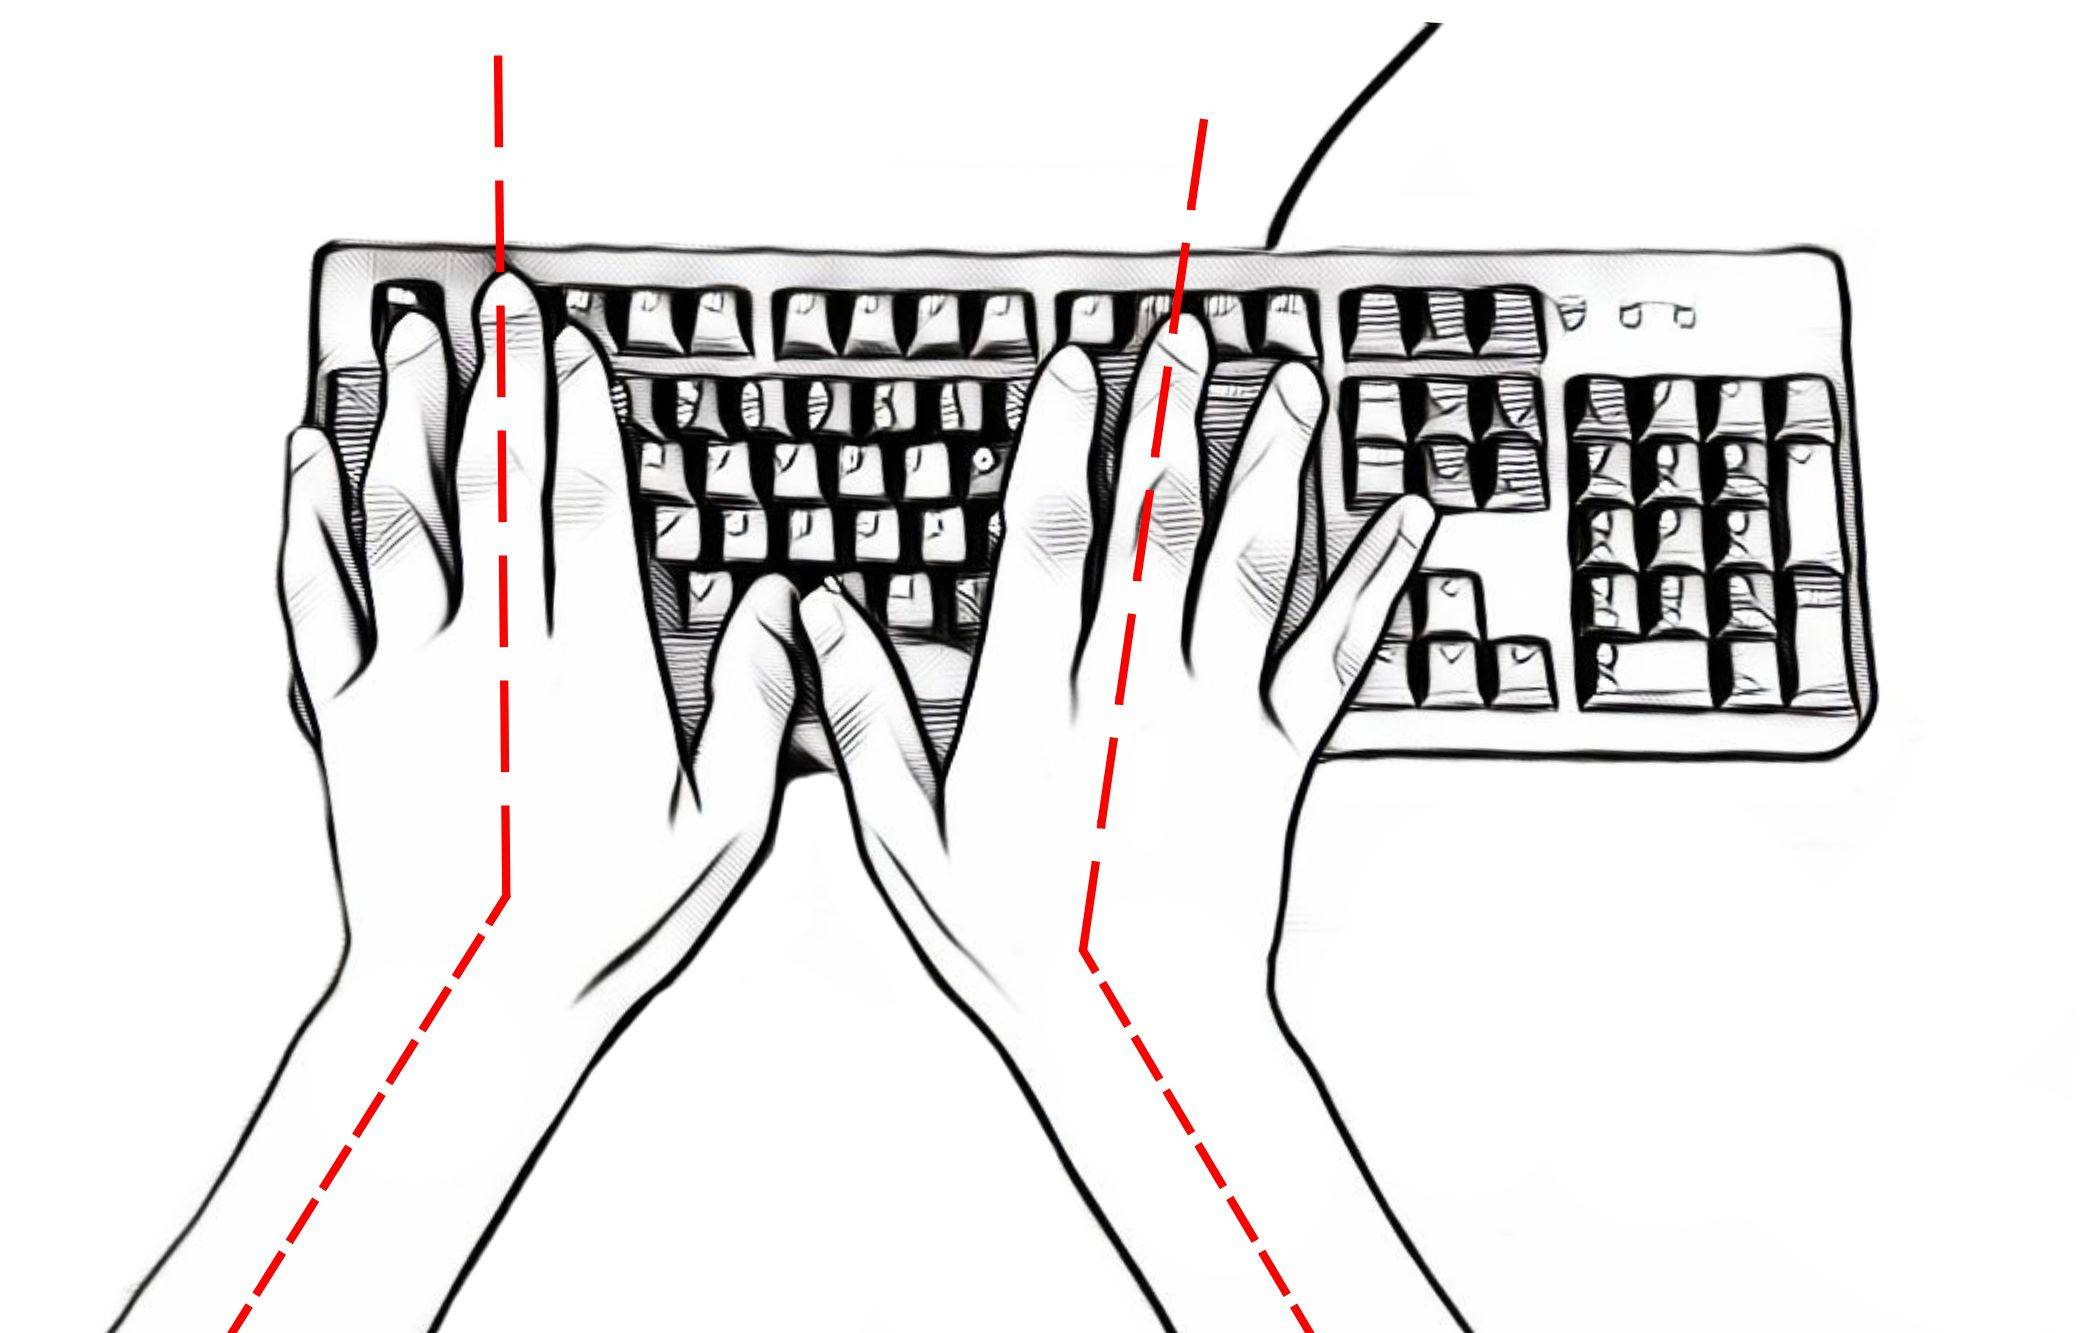 standard keyboard over-stretched hands